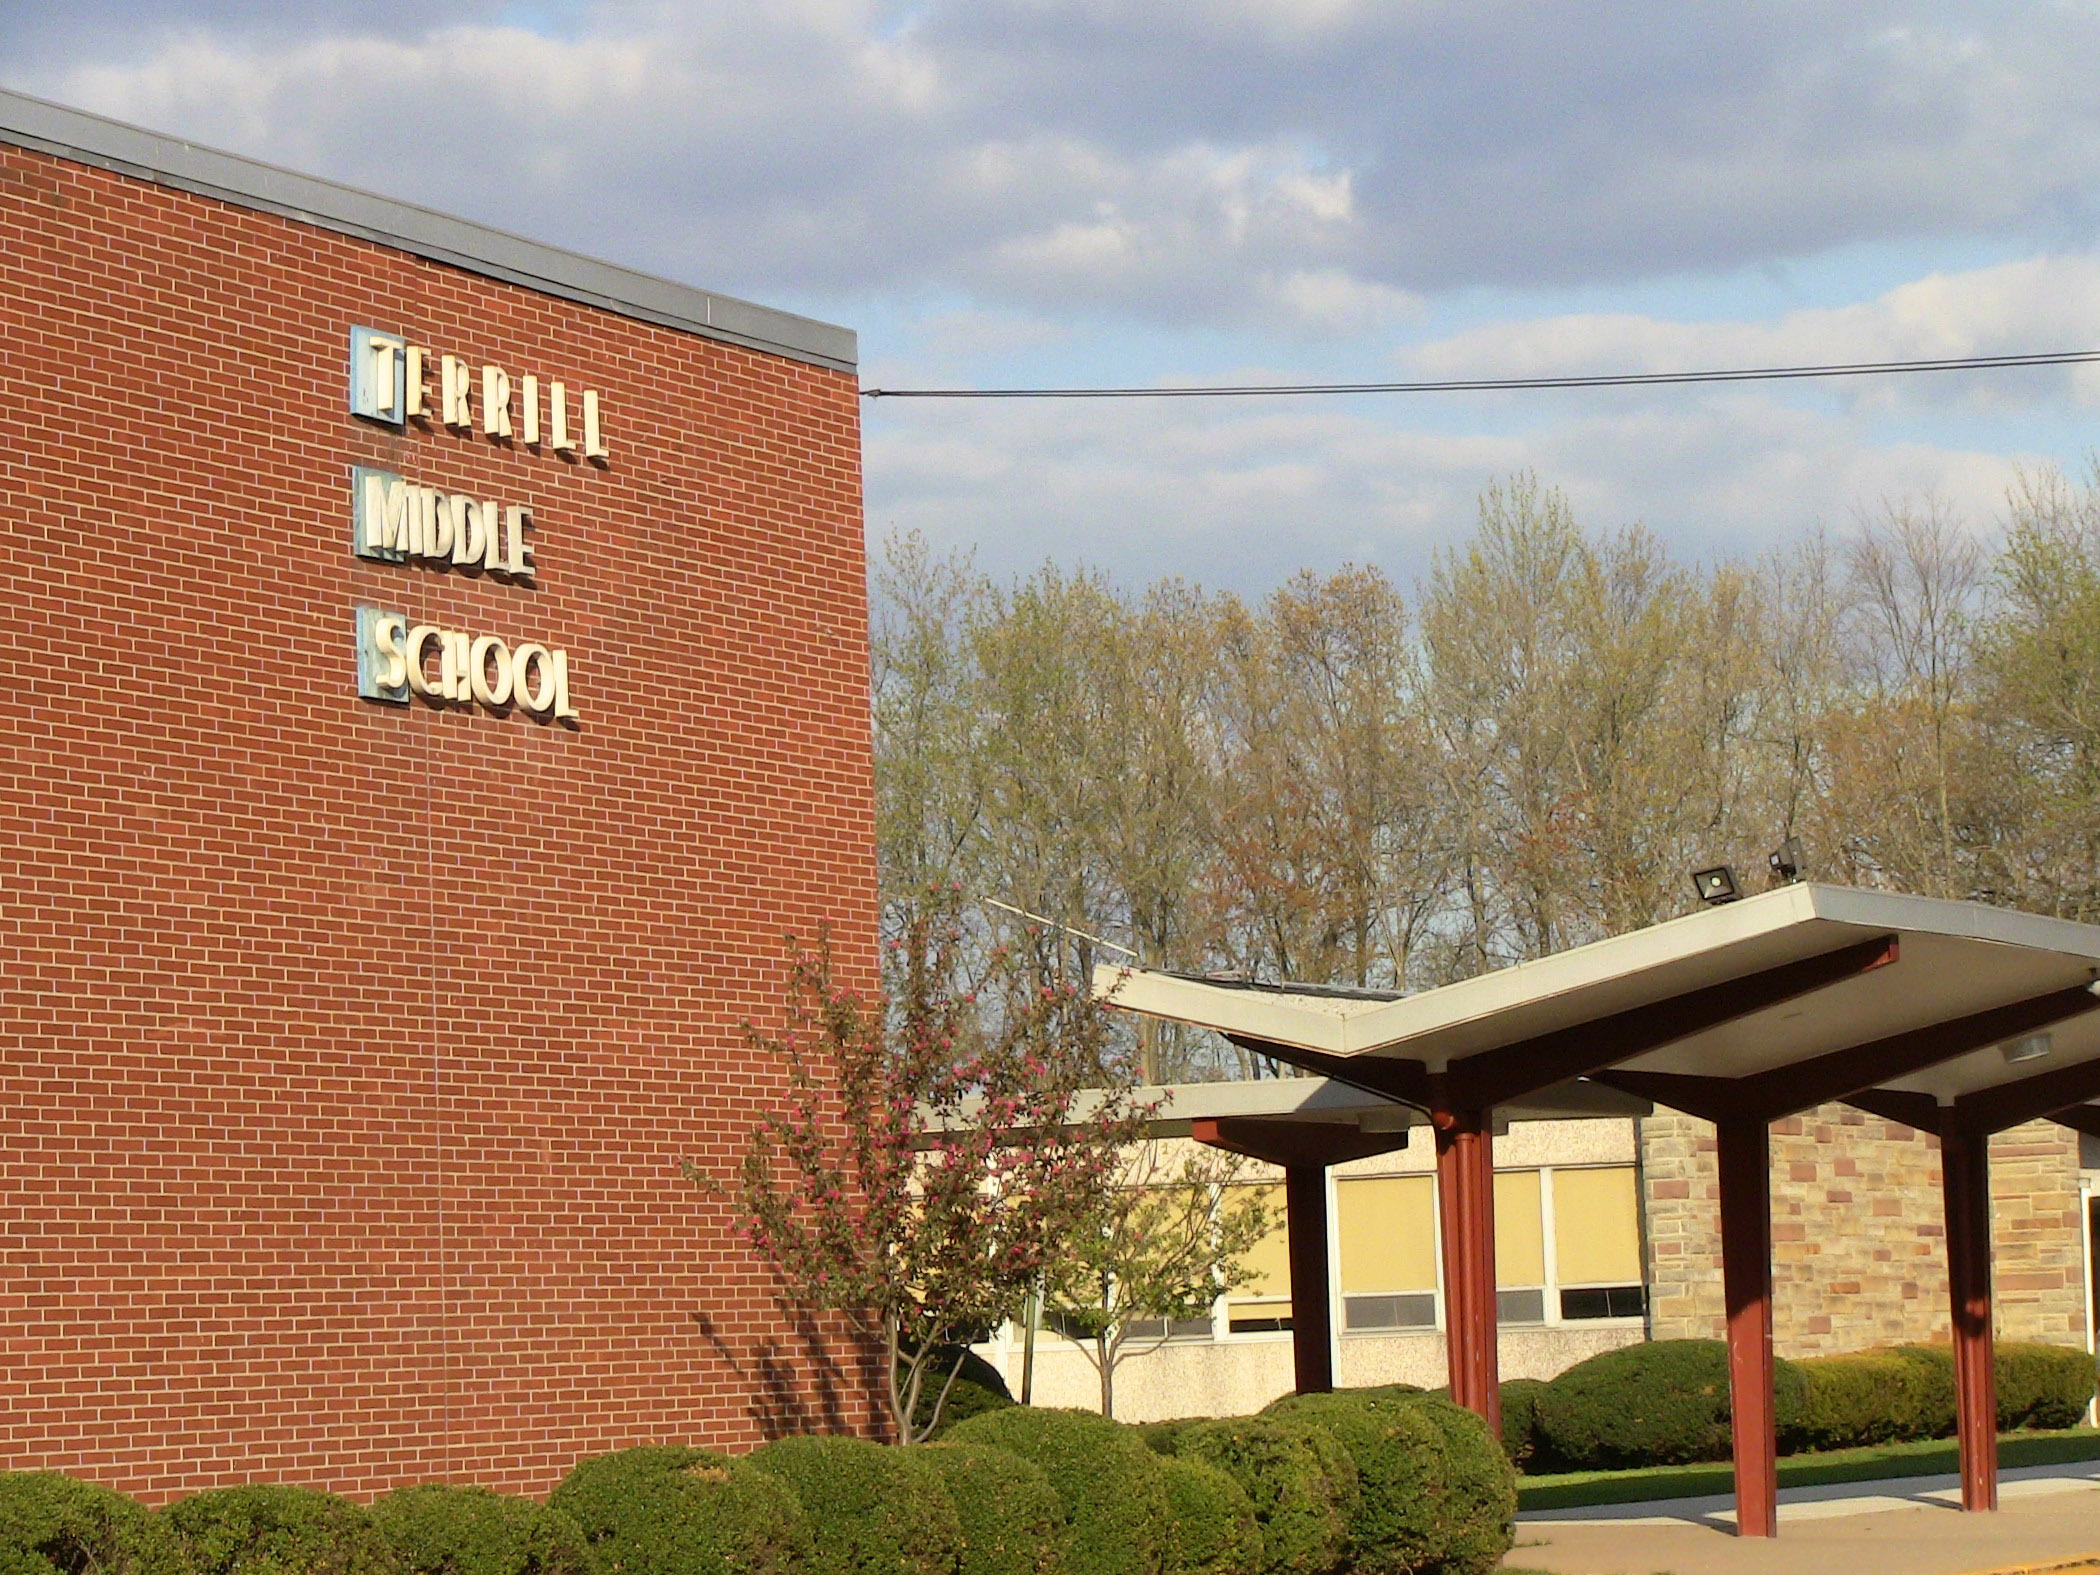 a5c64bace4be85e5e2f9_Terrill_Middle_School_exterior.jpg